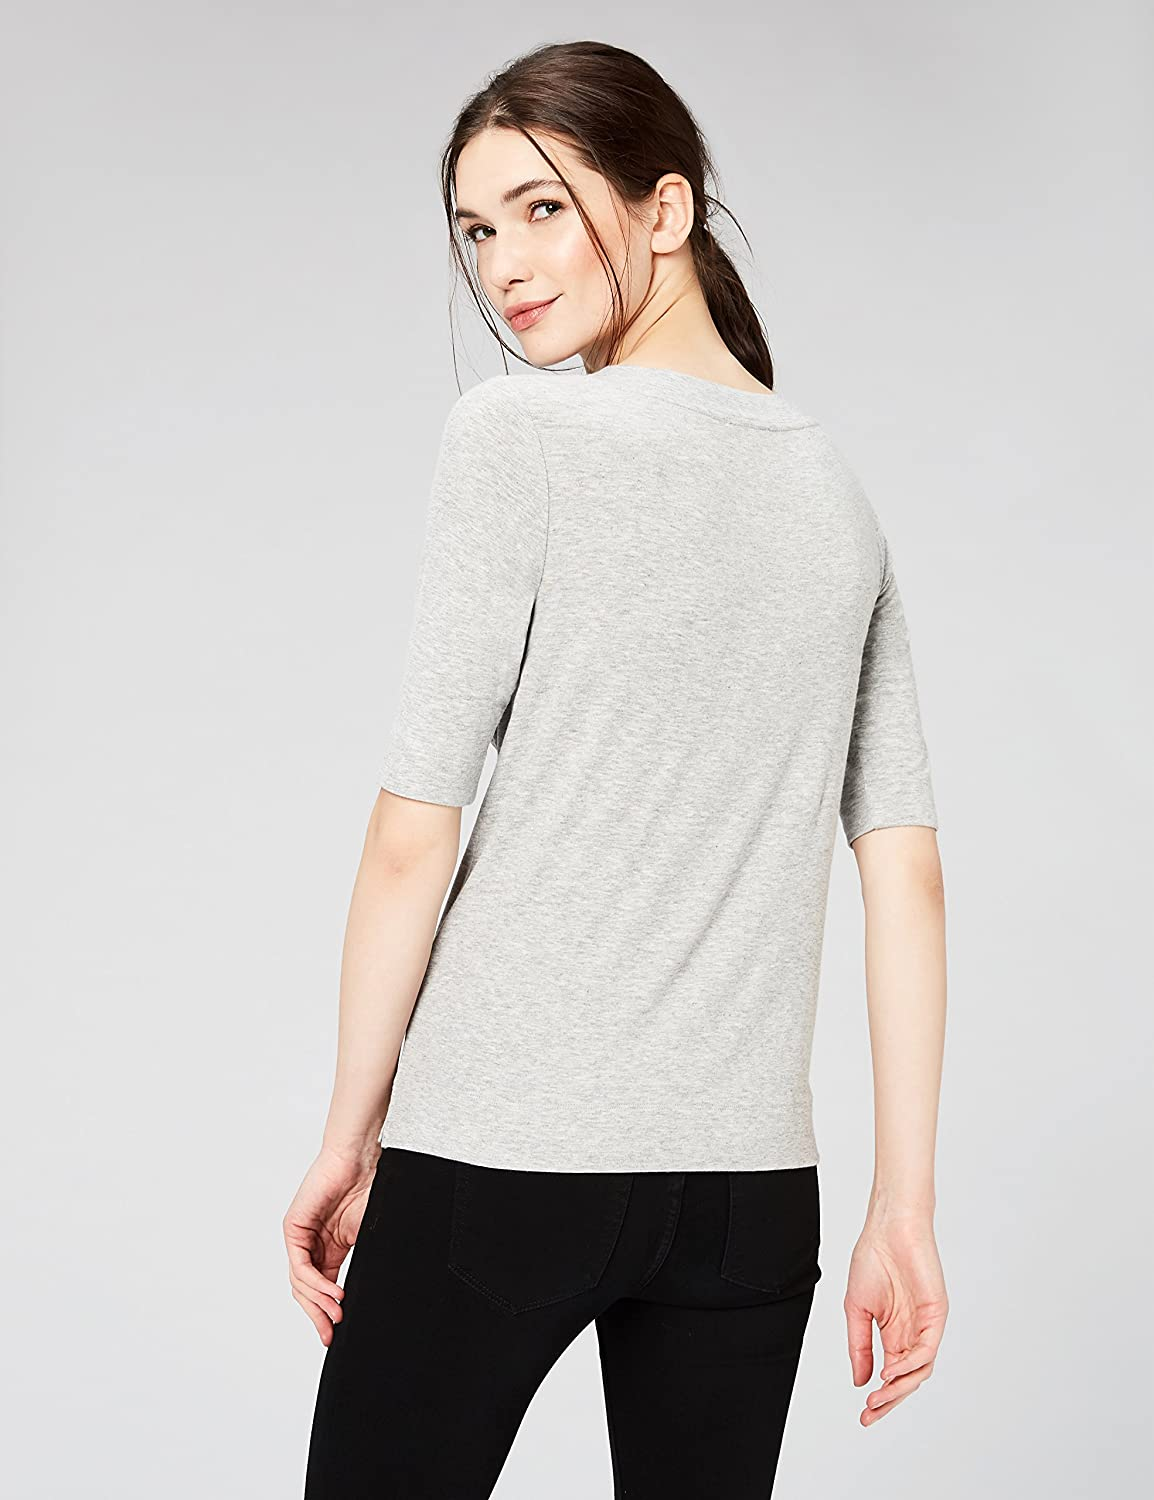 b58a94a9 Amazon.com: Daily Ritual Women's Rib Knit Jersey Elbow-Sleeve Boat Neck  Shirt: Clothing